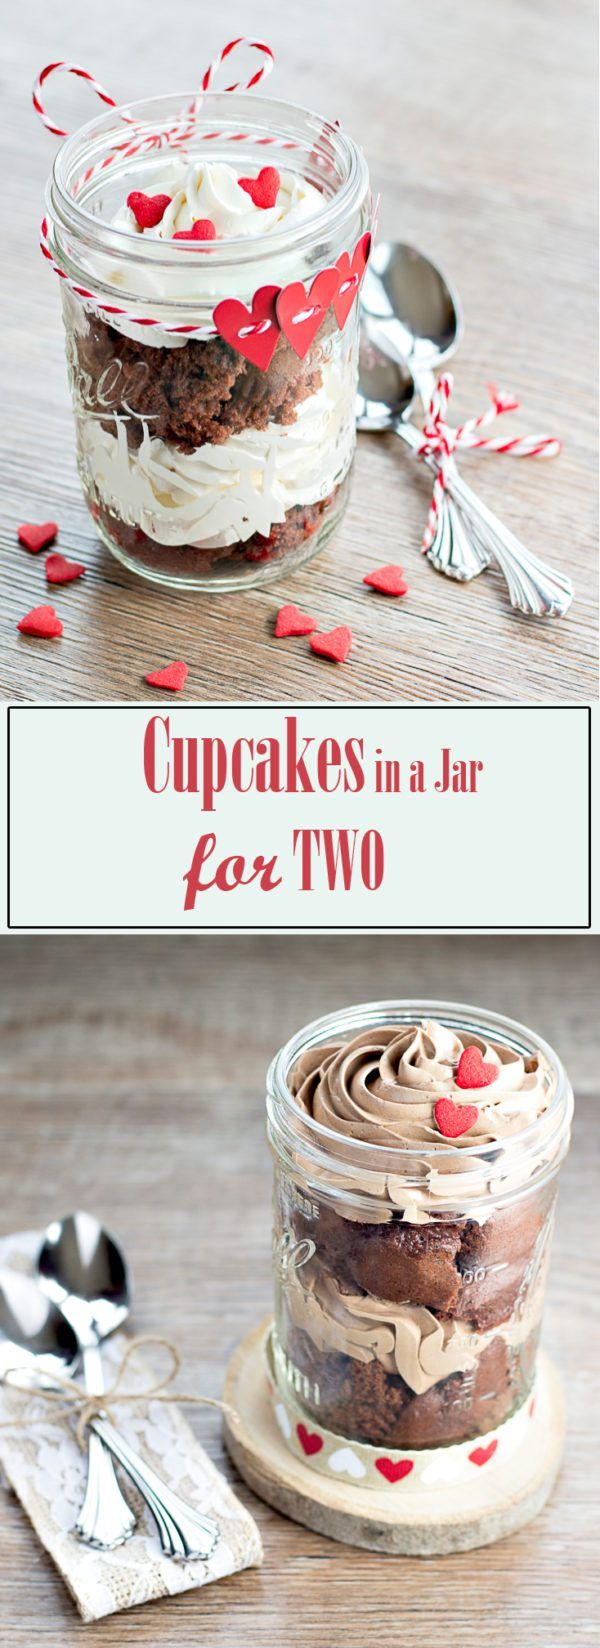 Cupcakes in a Jar for Two!